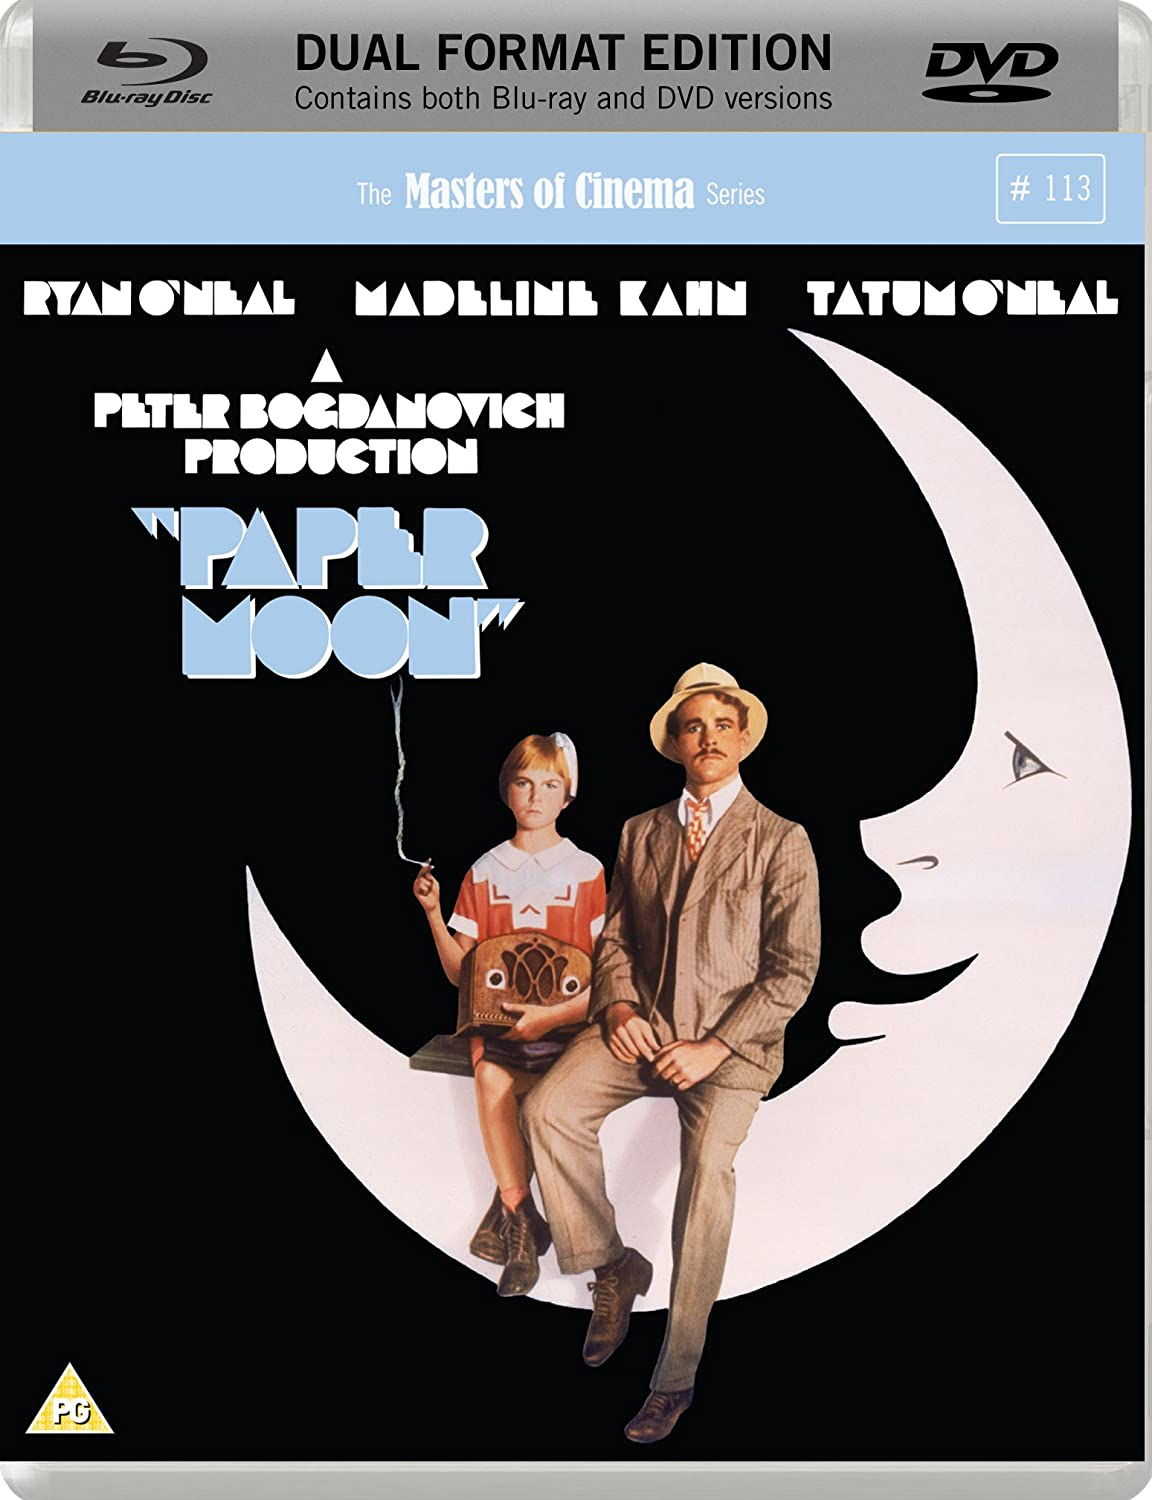 Paper Moon on DVD and blu ray disc